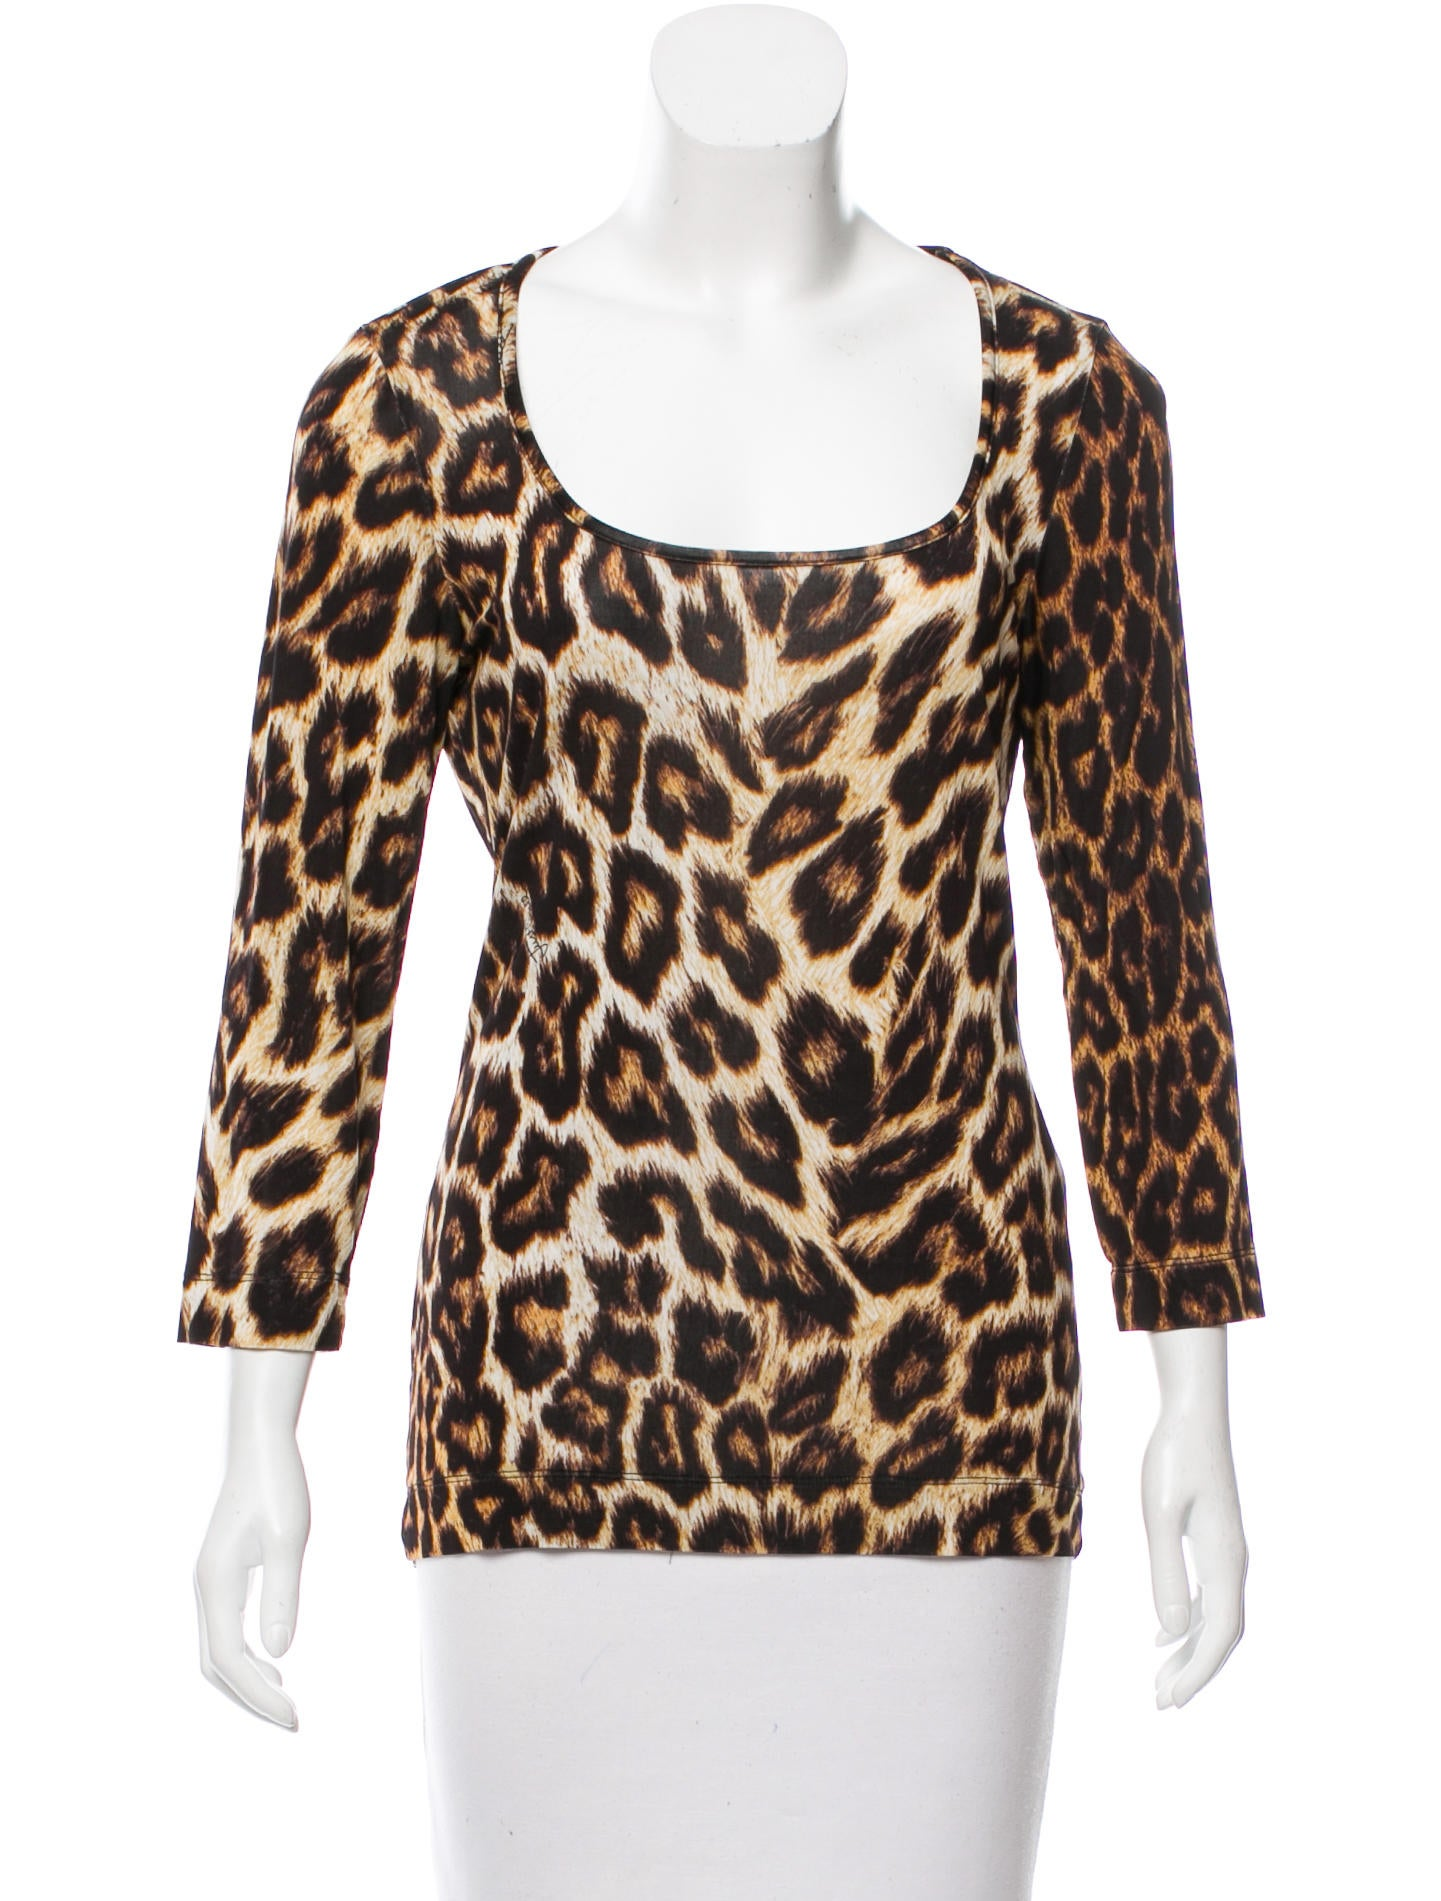 New Umgee brown and banana cheetah print relaxed fit top featuring contrast ruffled sleeves and hemline. Material: 55% Cotton 45% Polyester. Top runs large and is intended for loose fit.